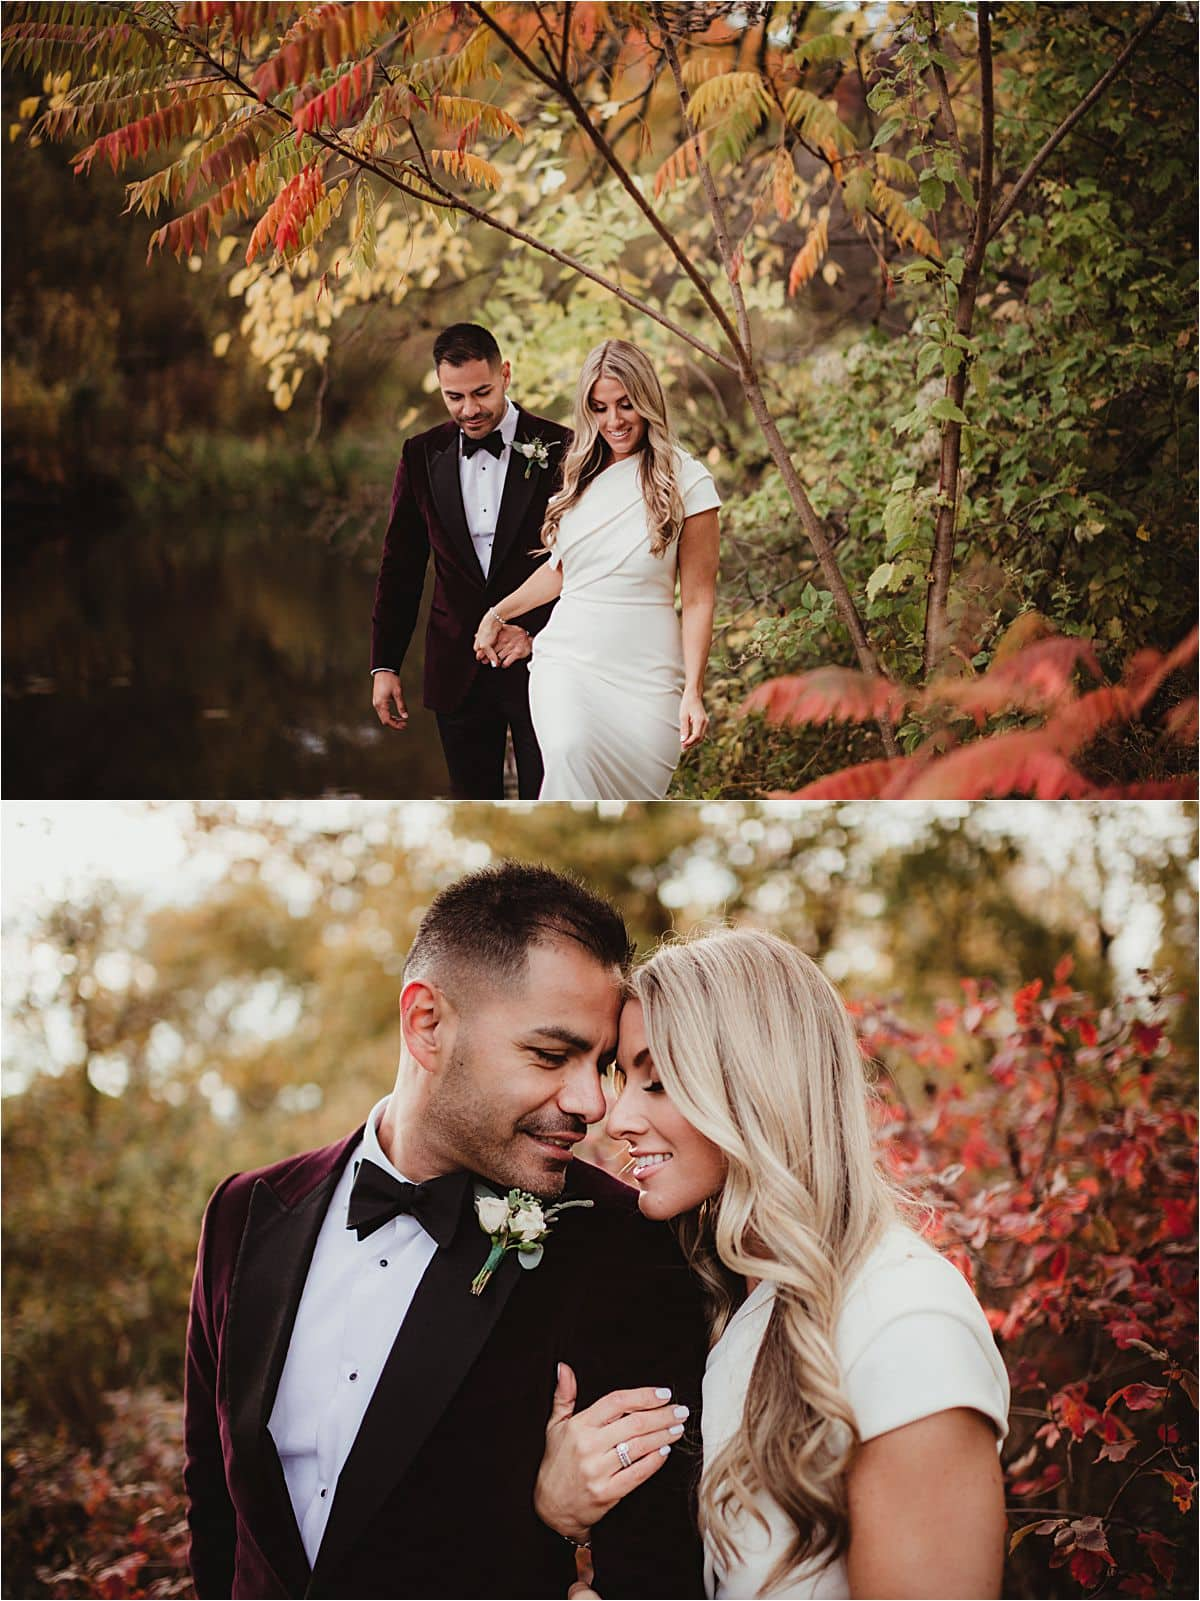 Late Autumn Church Wedding Couple Walking in Fall Leaves